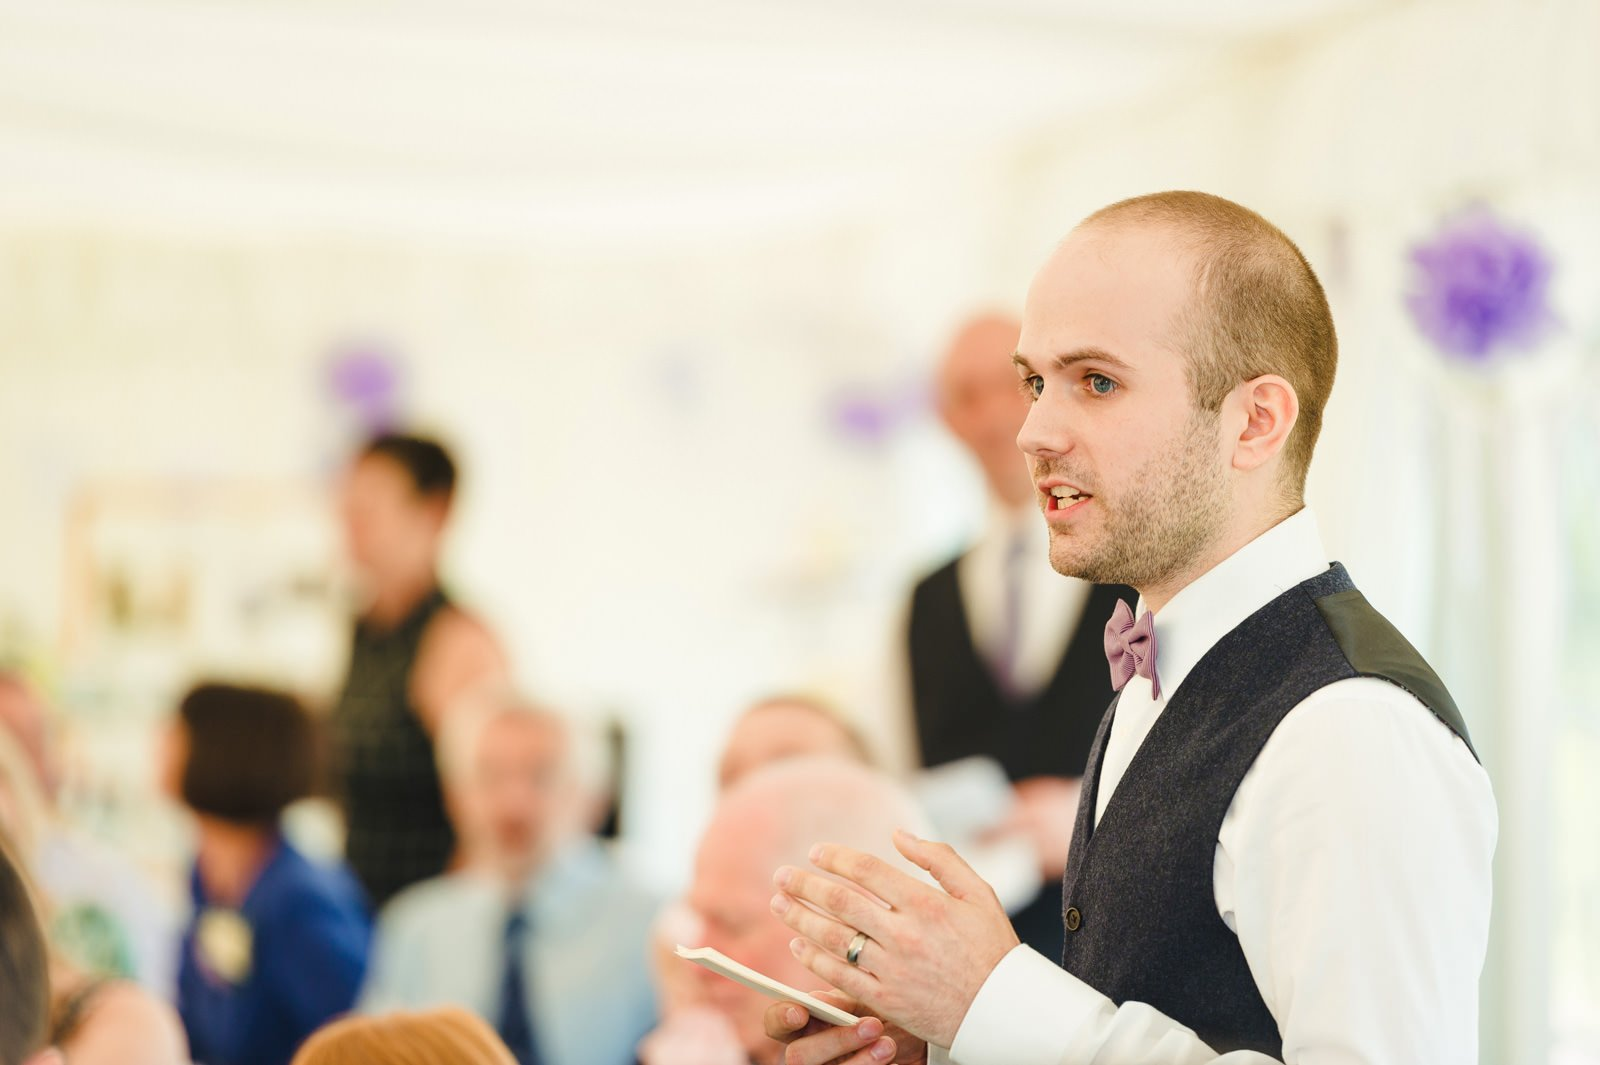 Millers Of Netley wedding, Dorrington, Shrewsbury | Emma + Ben 71